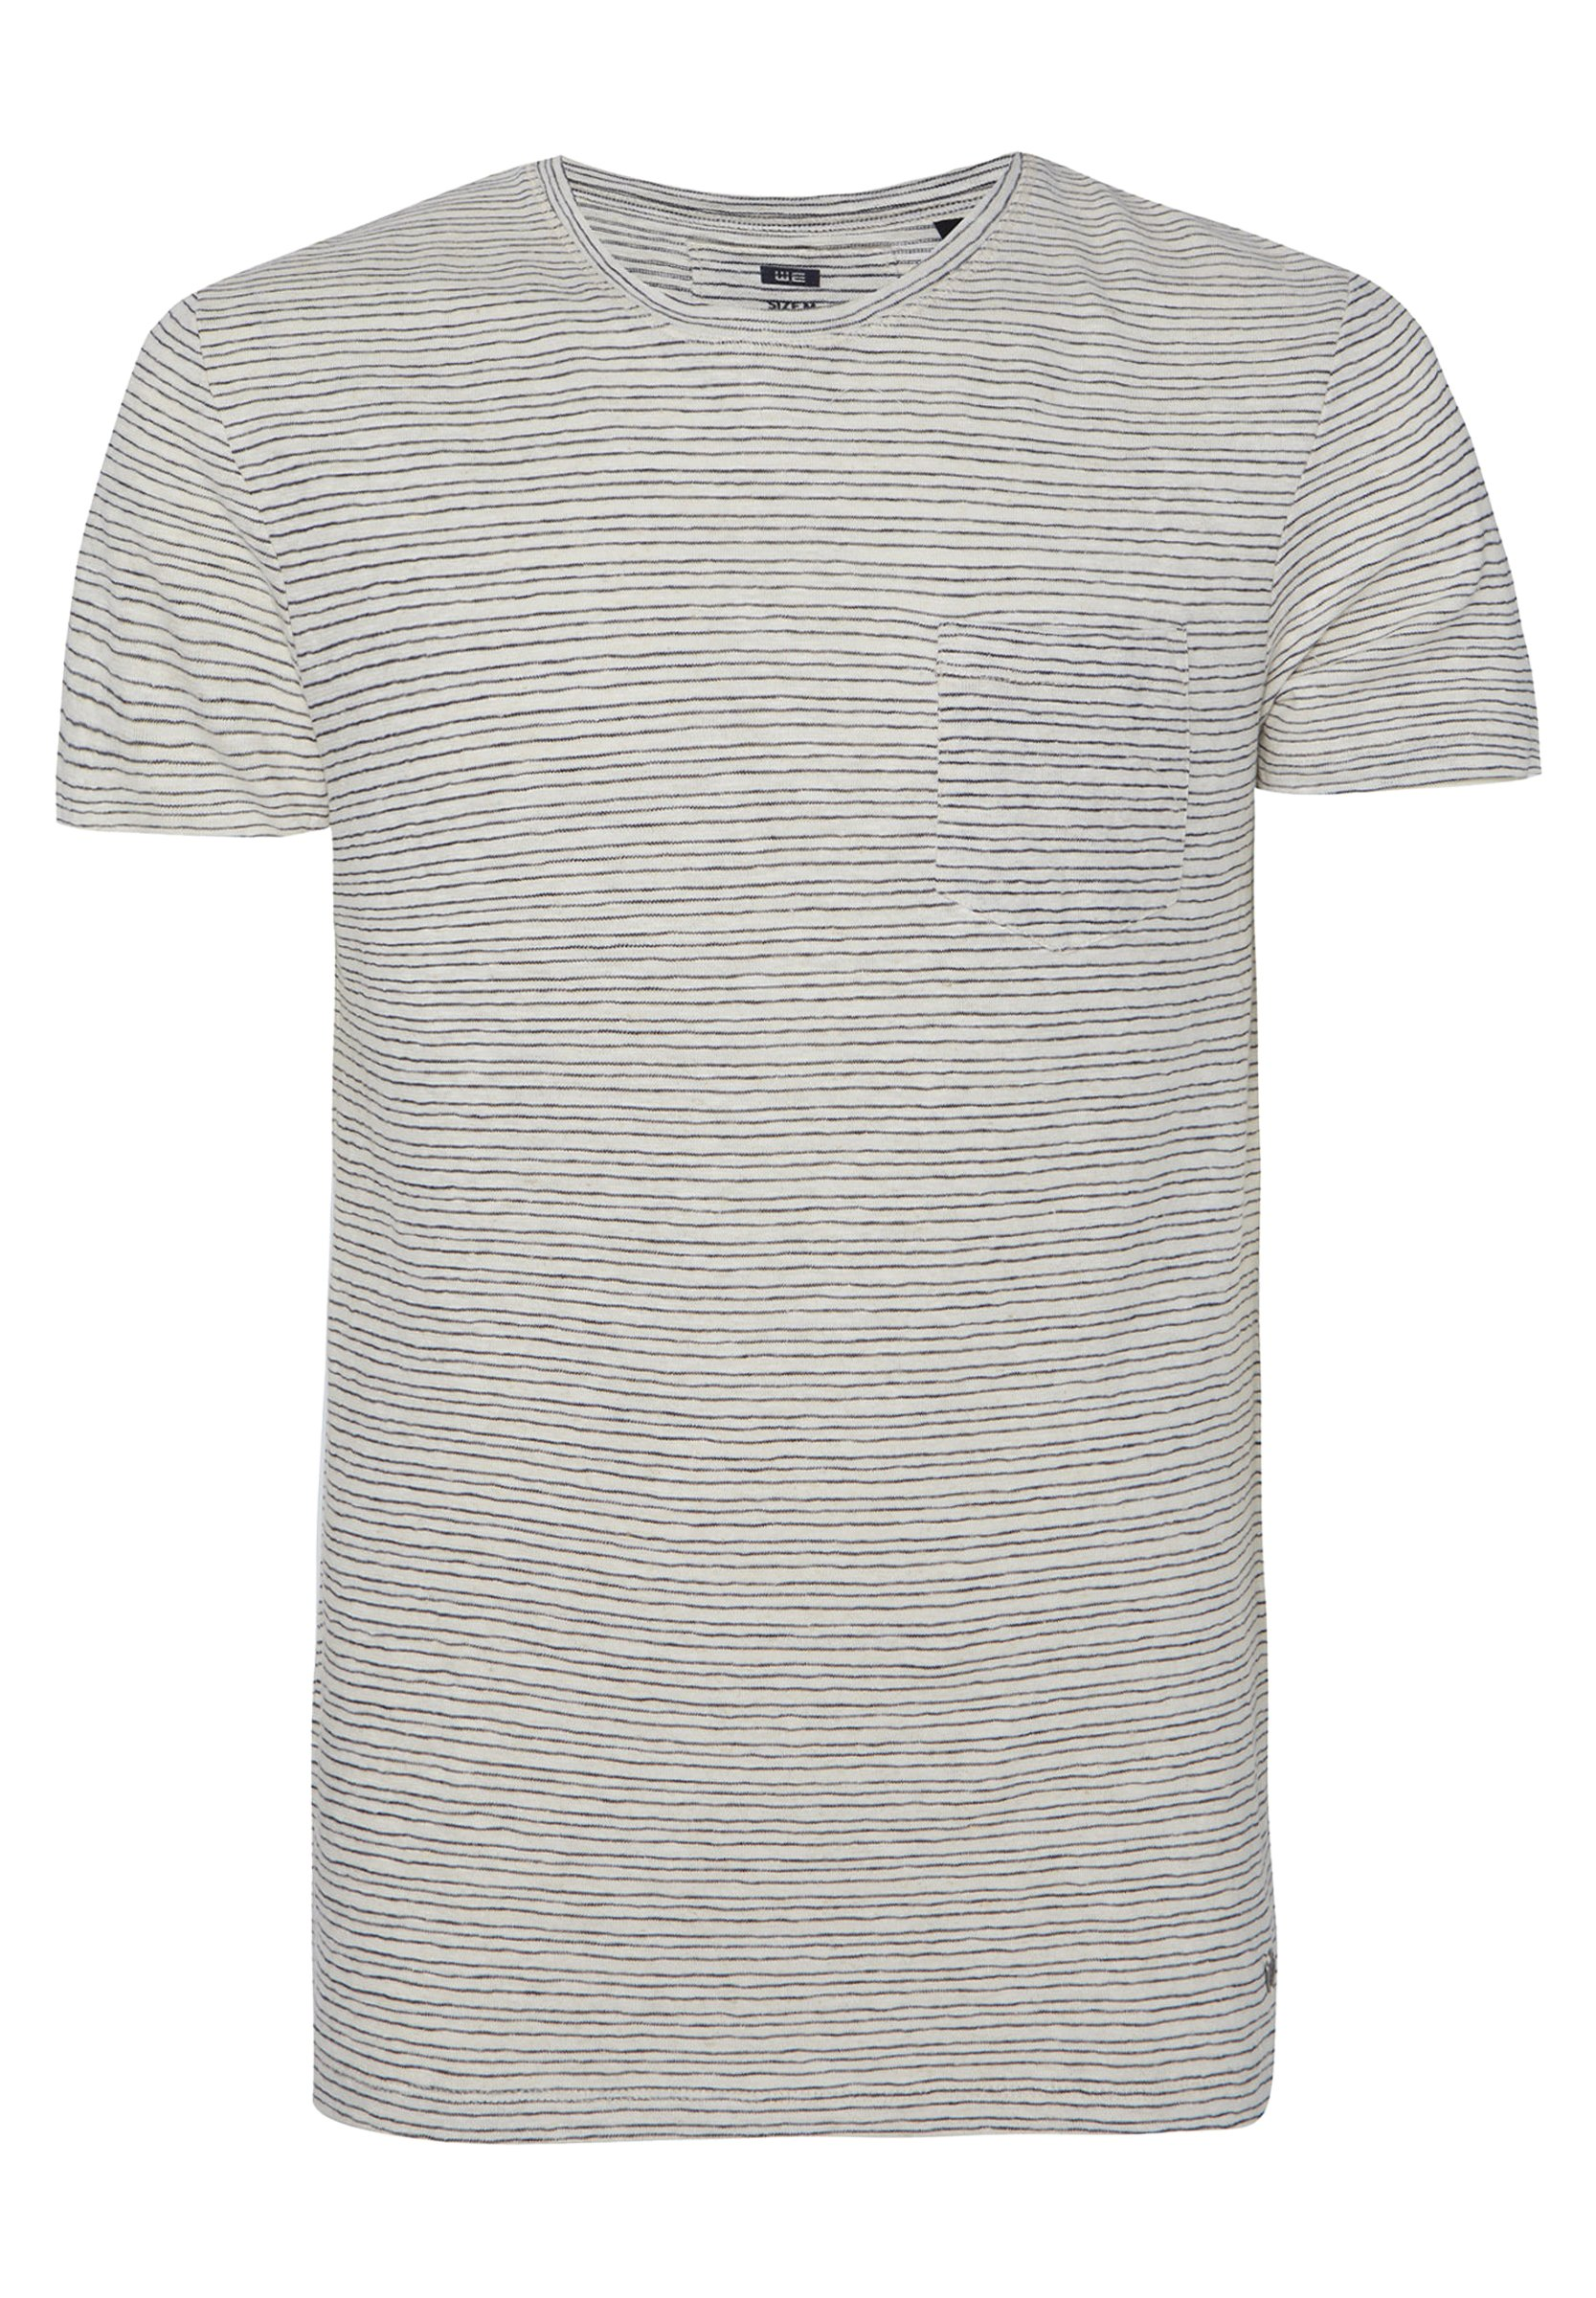 We Fashion T-shirt Con Stampa - Light Grey